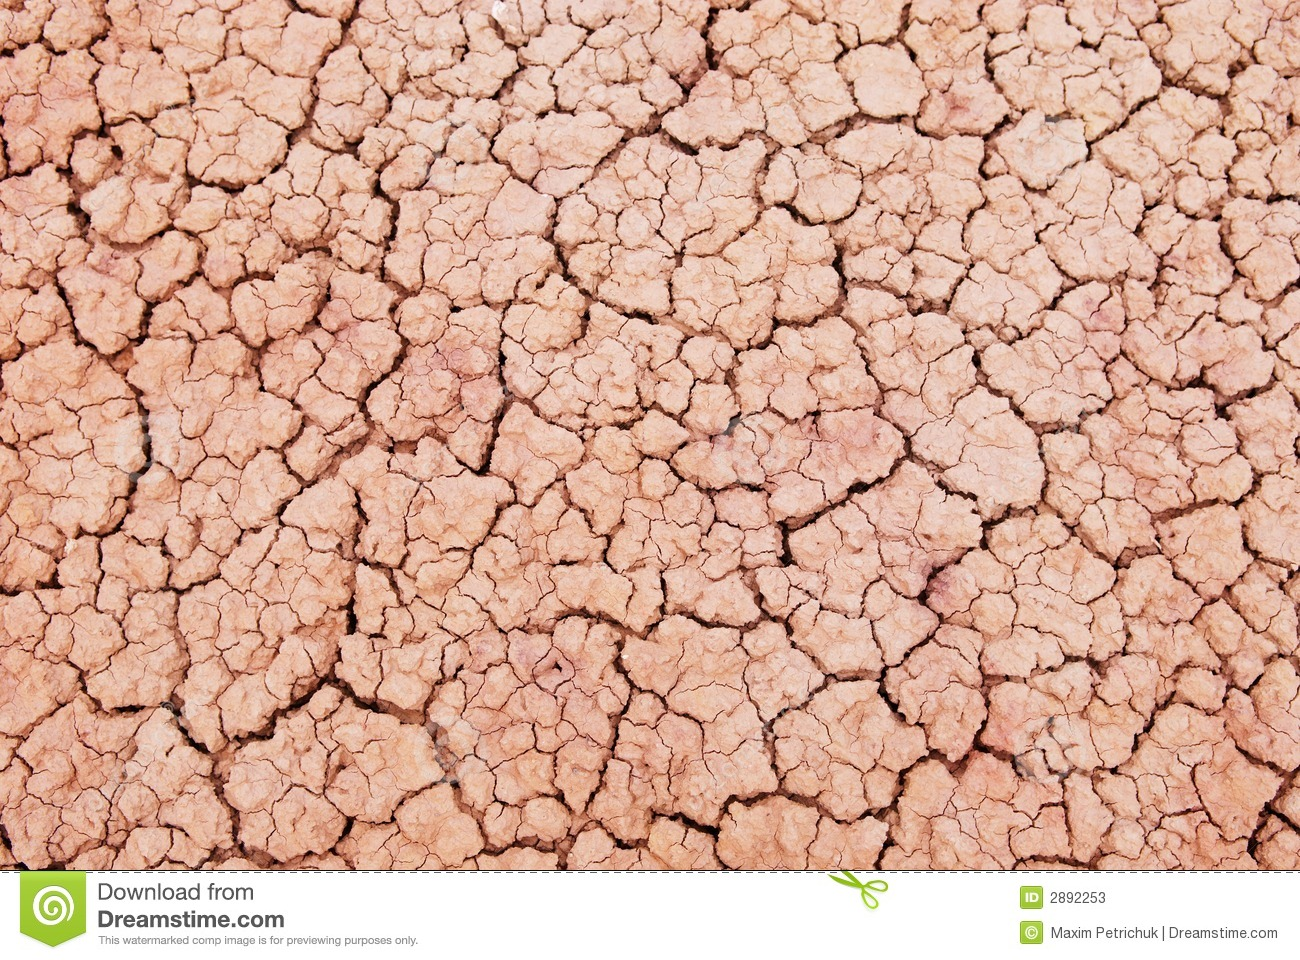 Dry surface texture